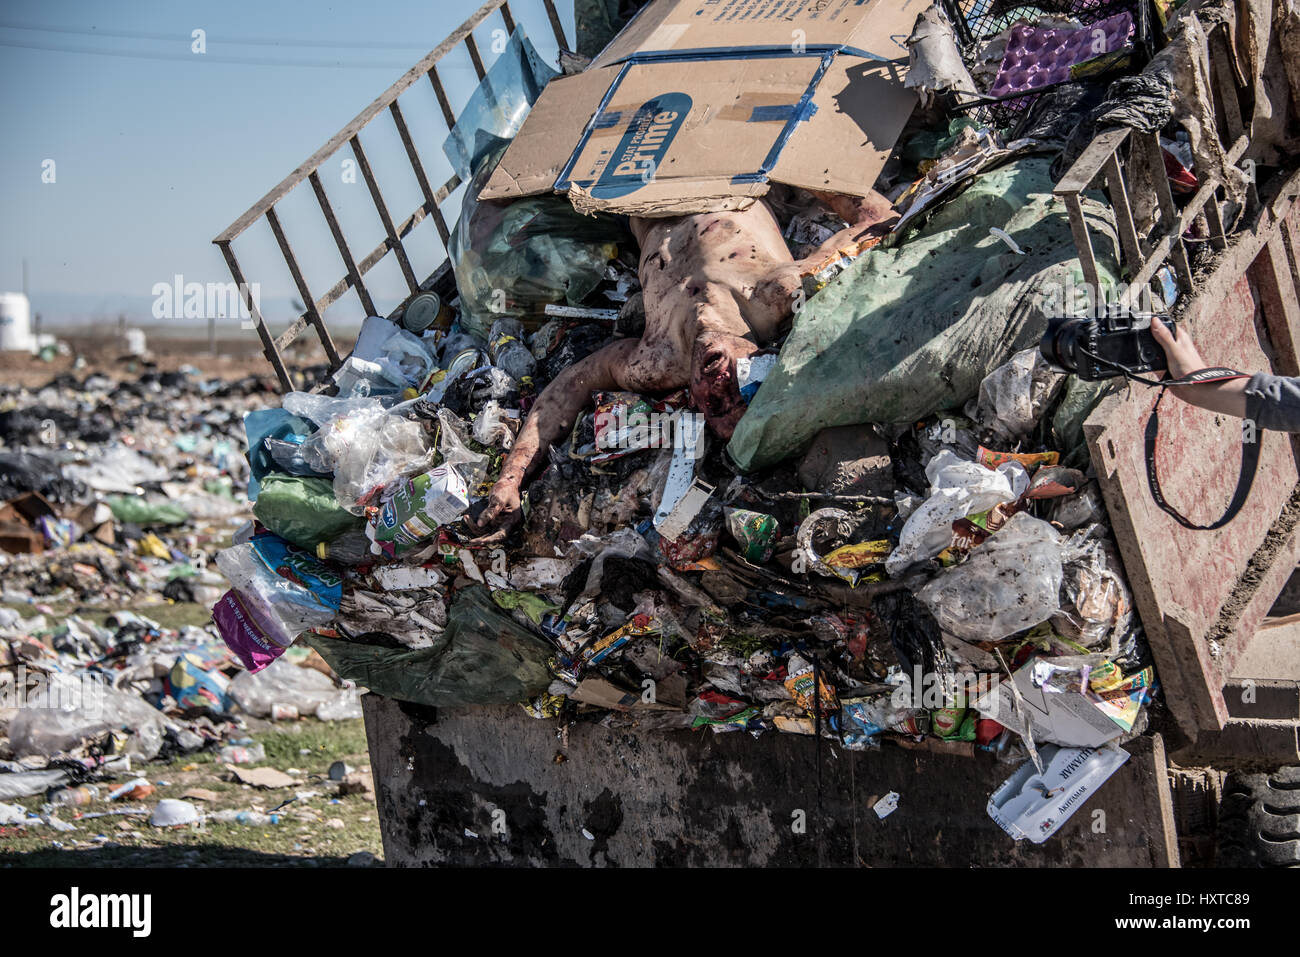 landfill near Hammam al-Alil, Iraq  25th March, 2017  *WARNING Stock